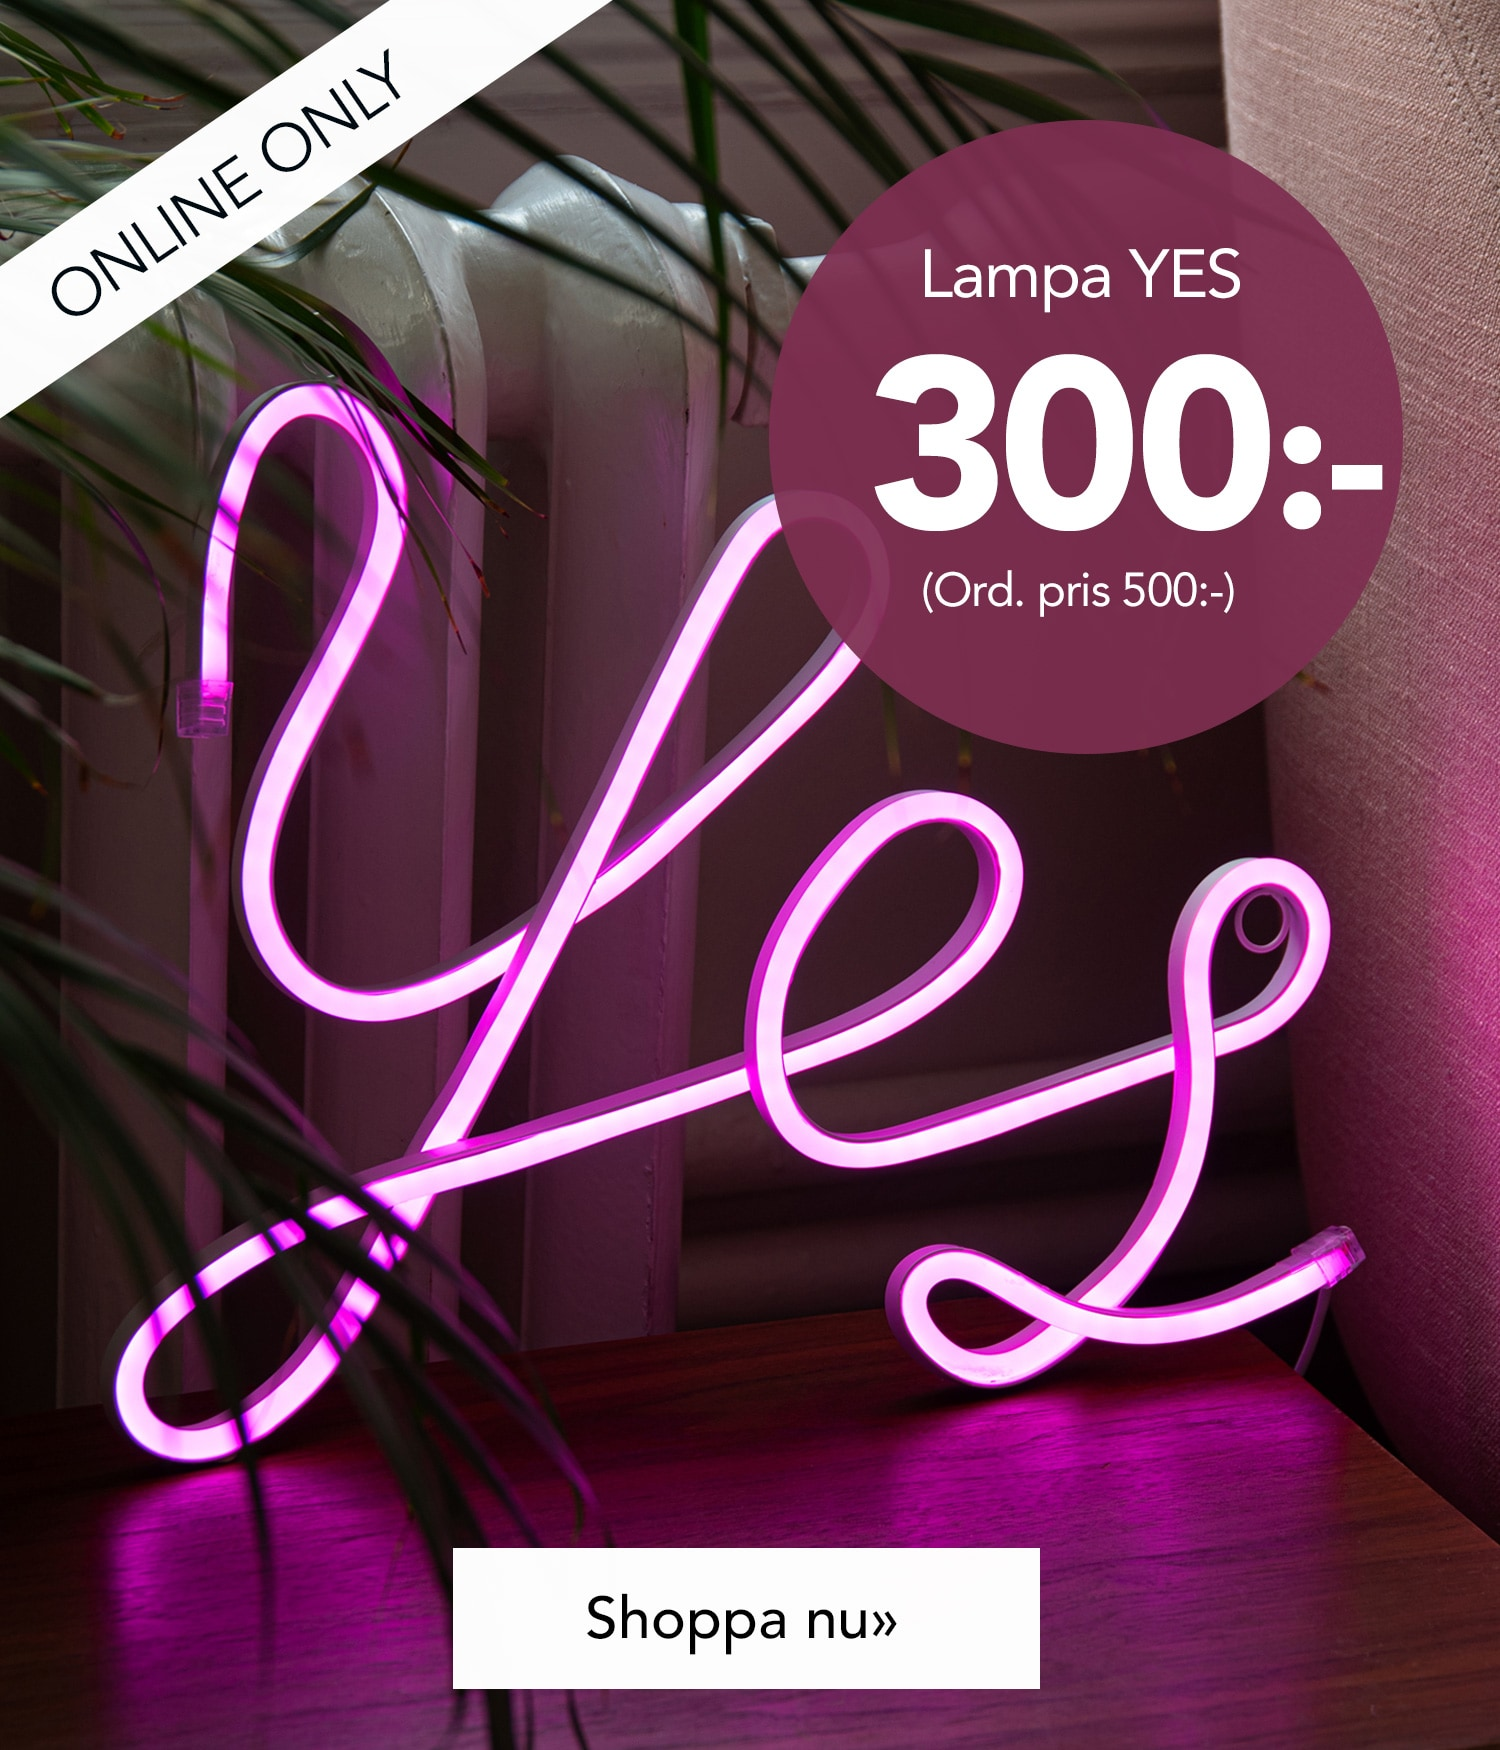 Lampa YES 300:-